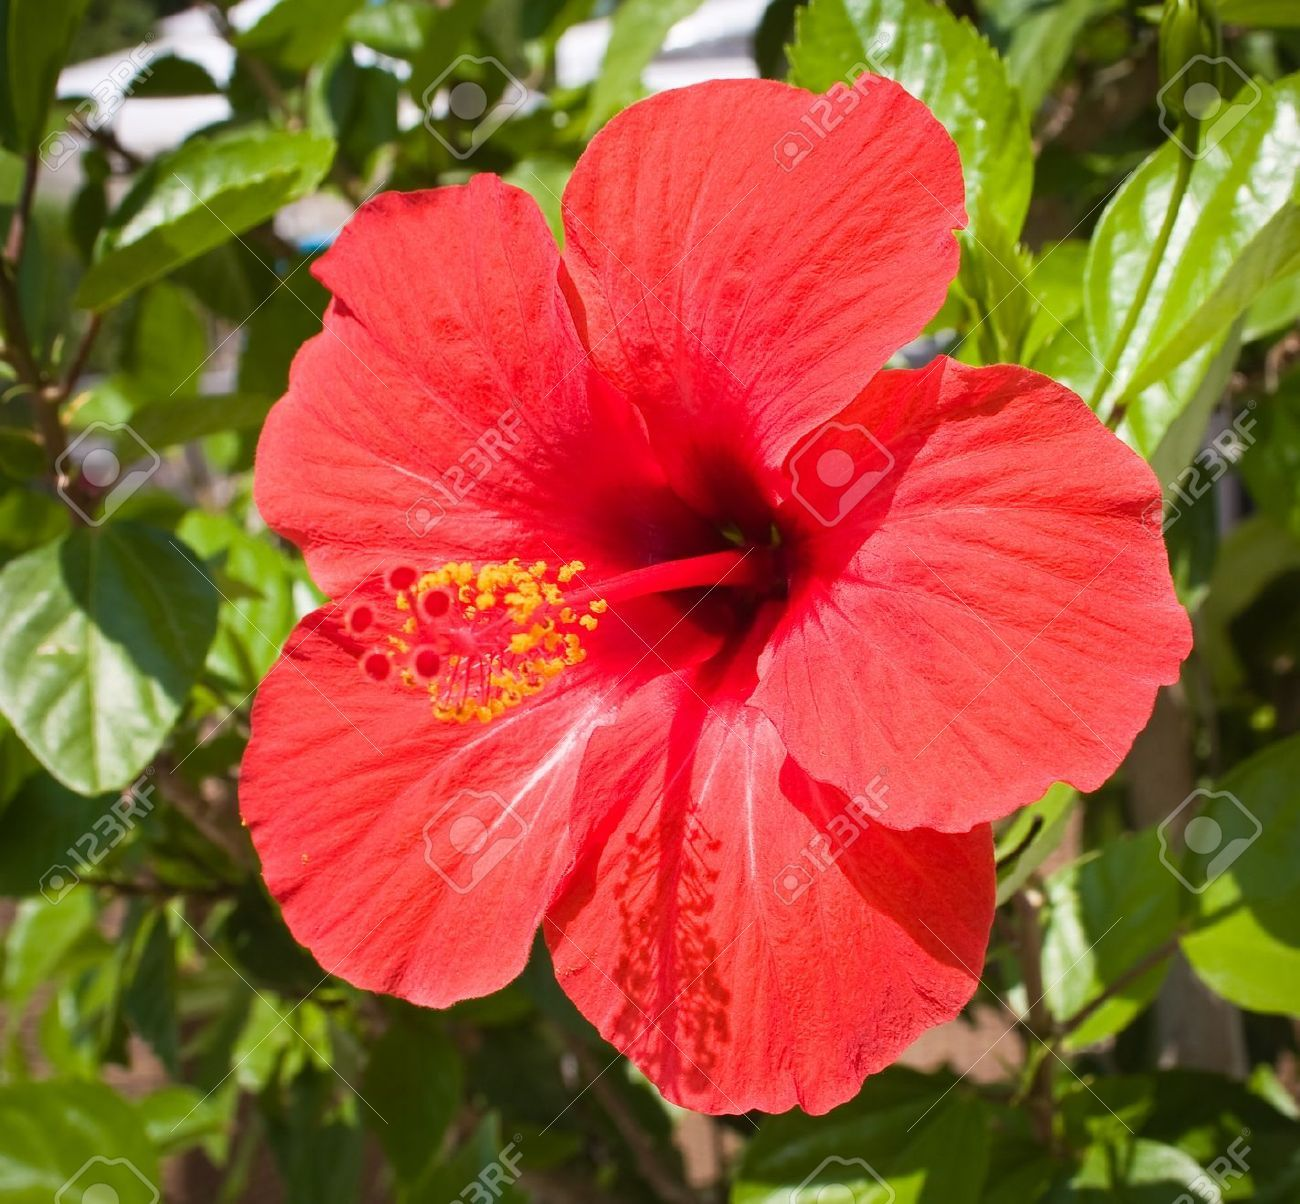 Image Result For Hibiscus Flower Wonderful Flowers Hibiscus Hibiscus Flowers